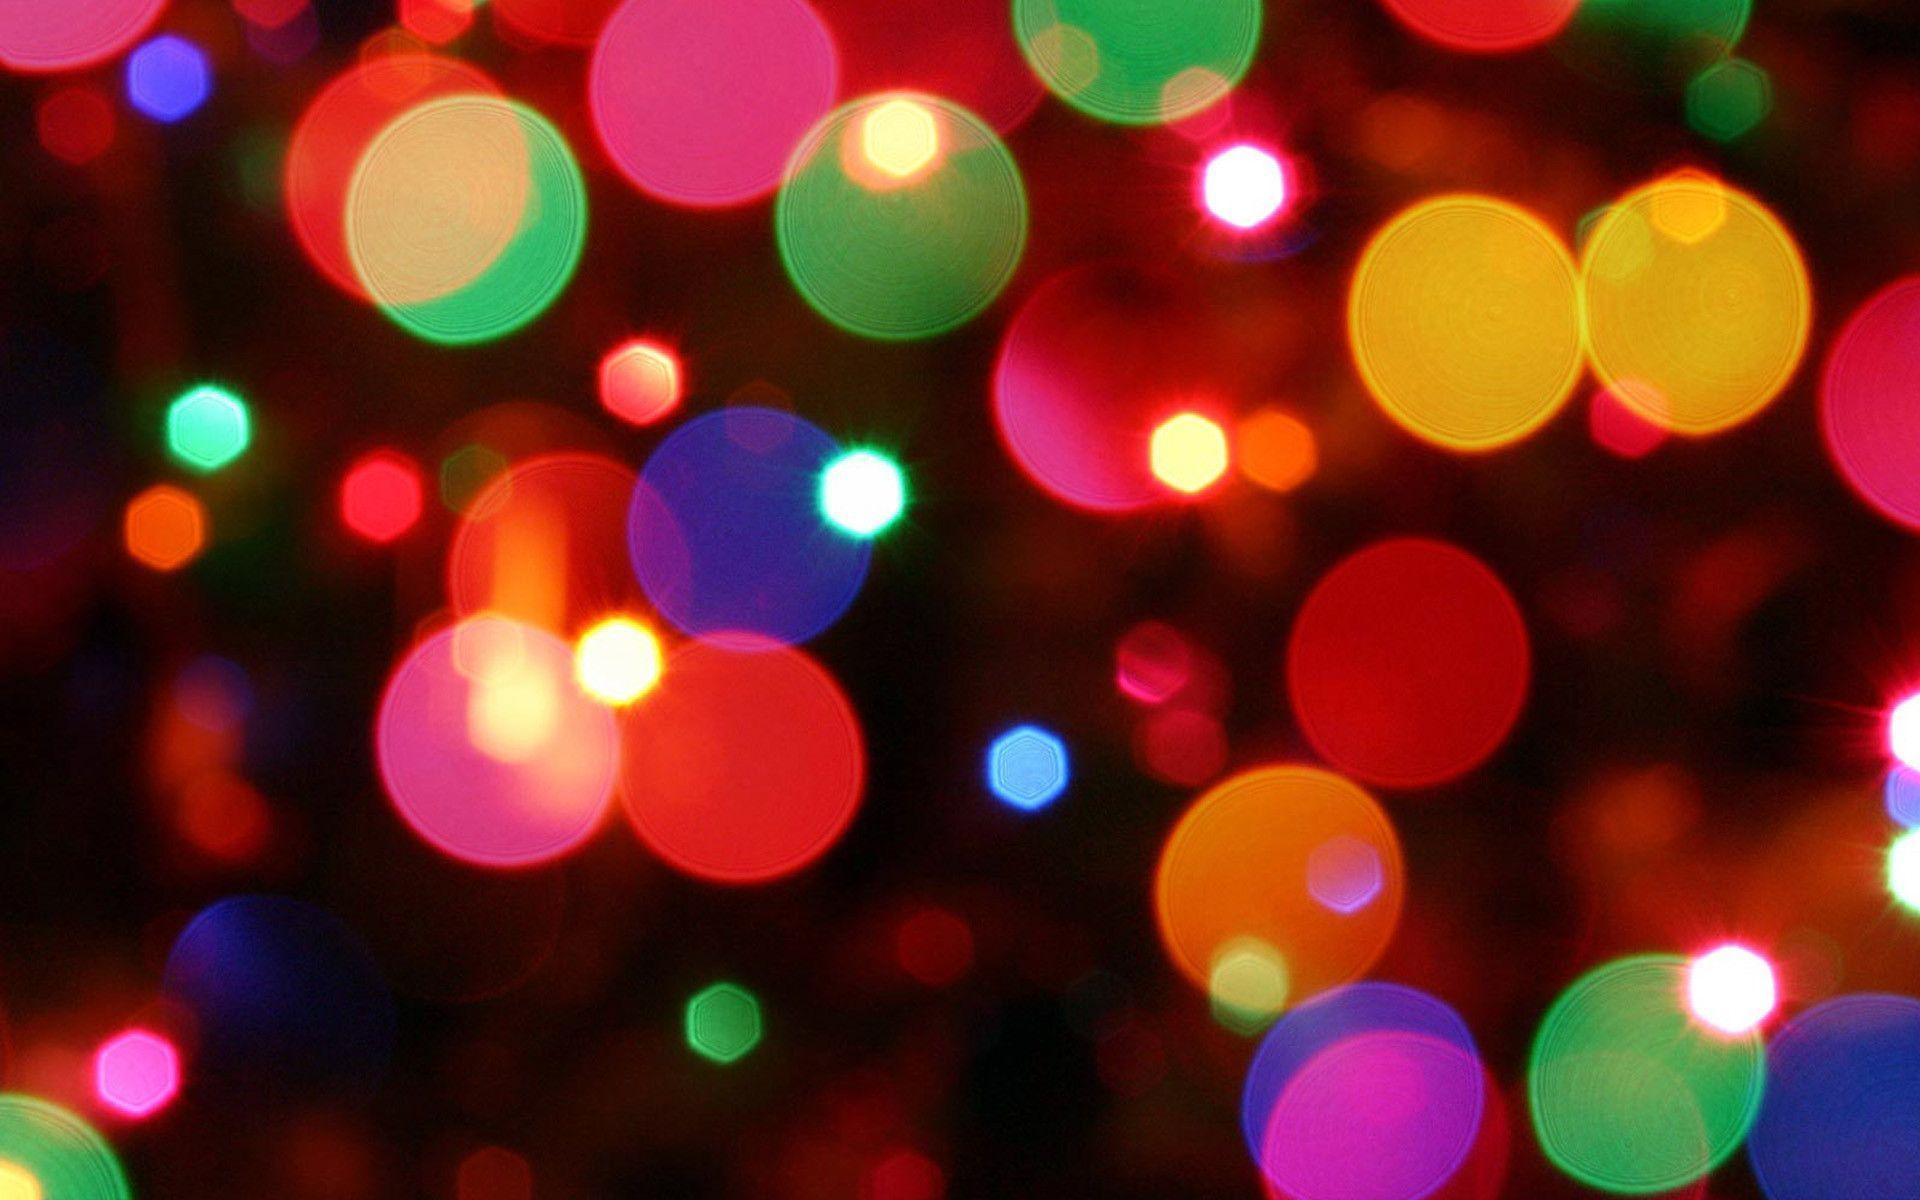 Christmas lights wallpaper - Holiday Lights Christmas Wallpaper1 Christmas Lights Wallpaper